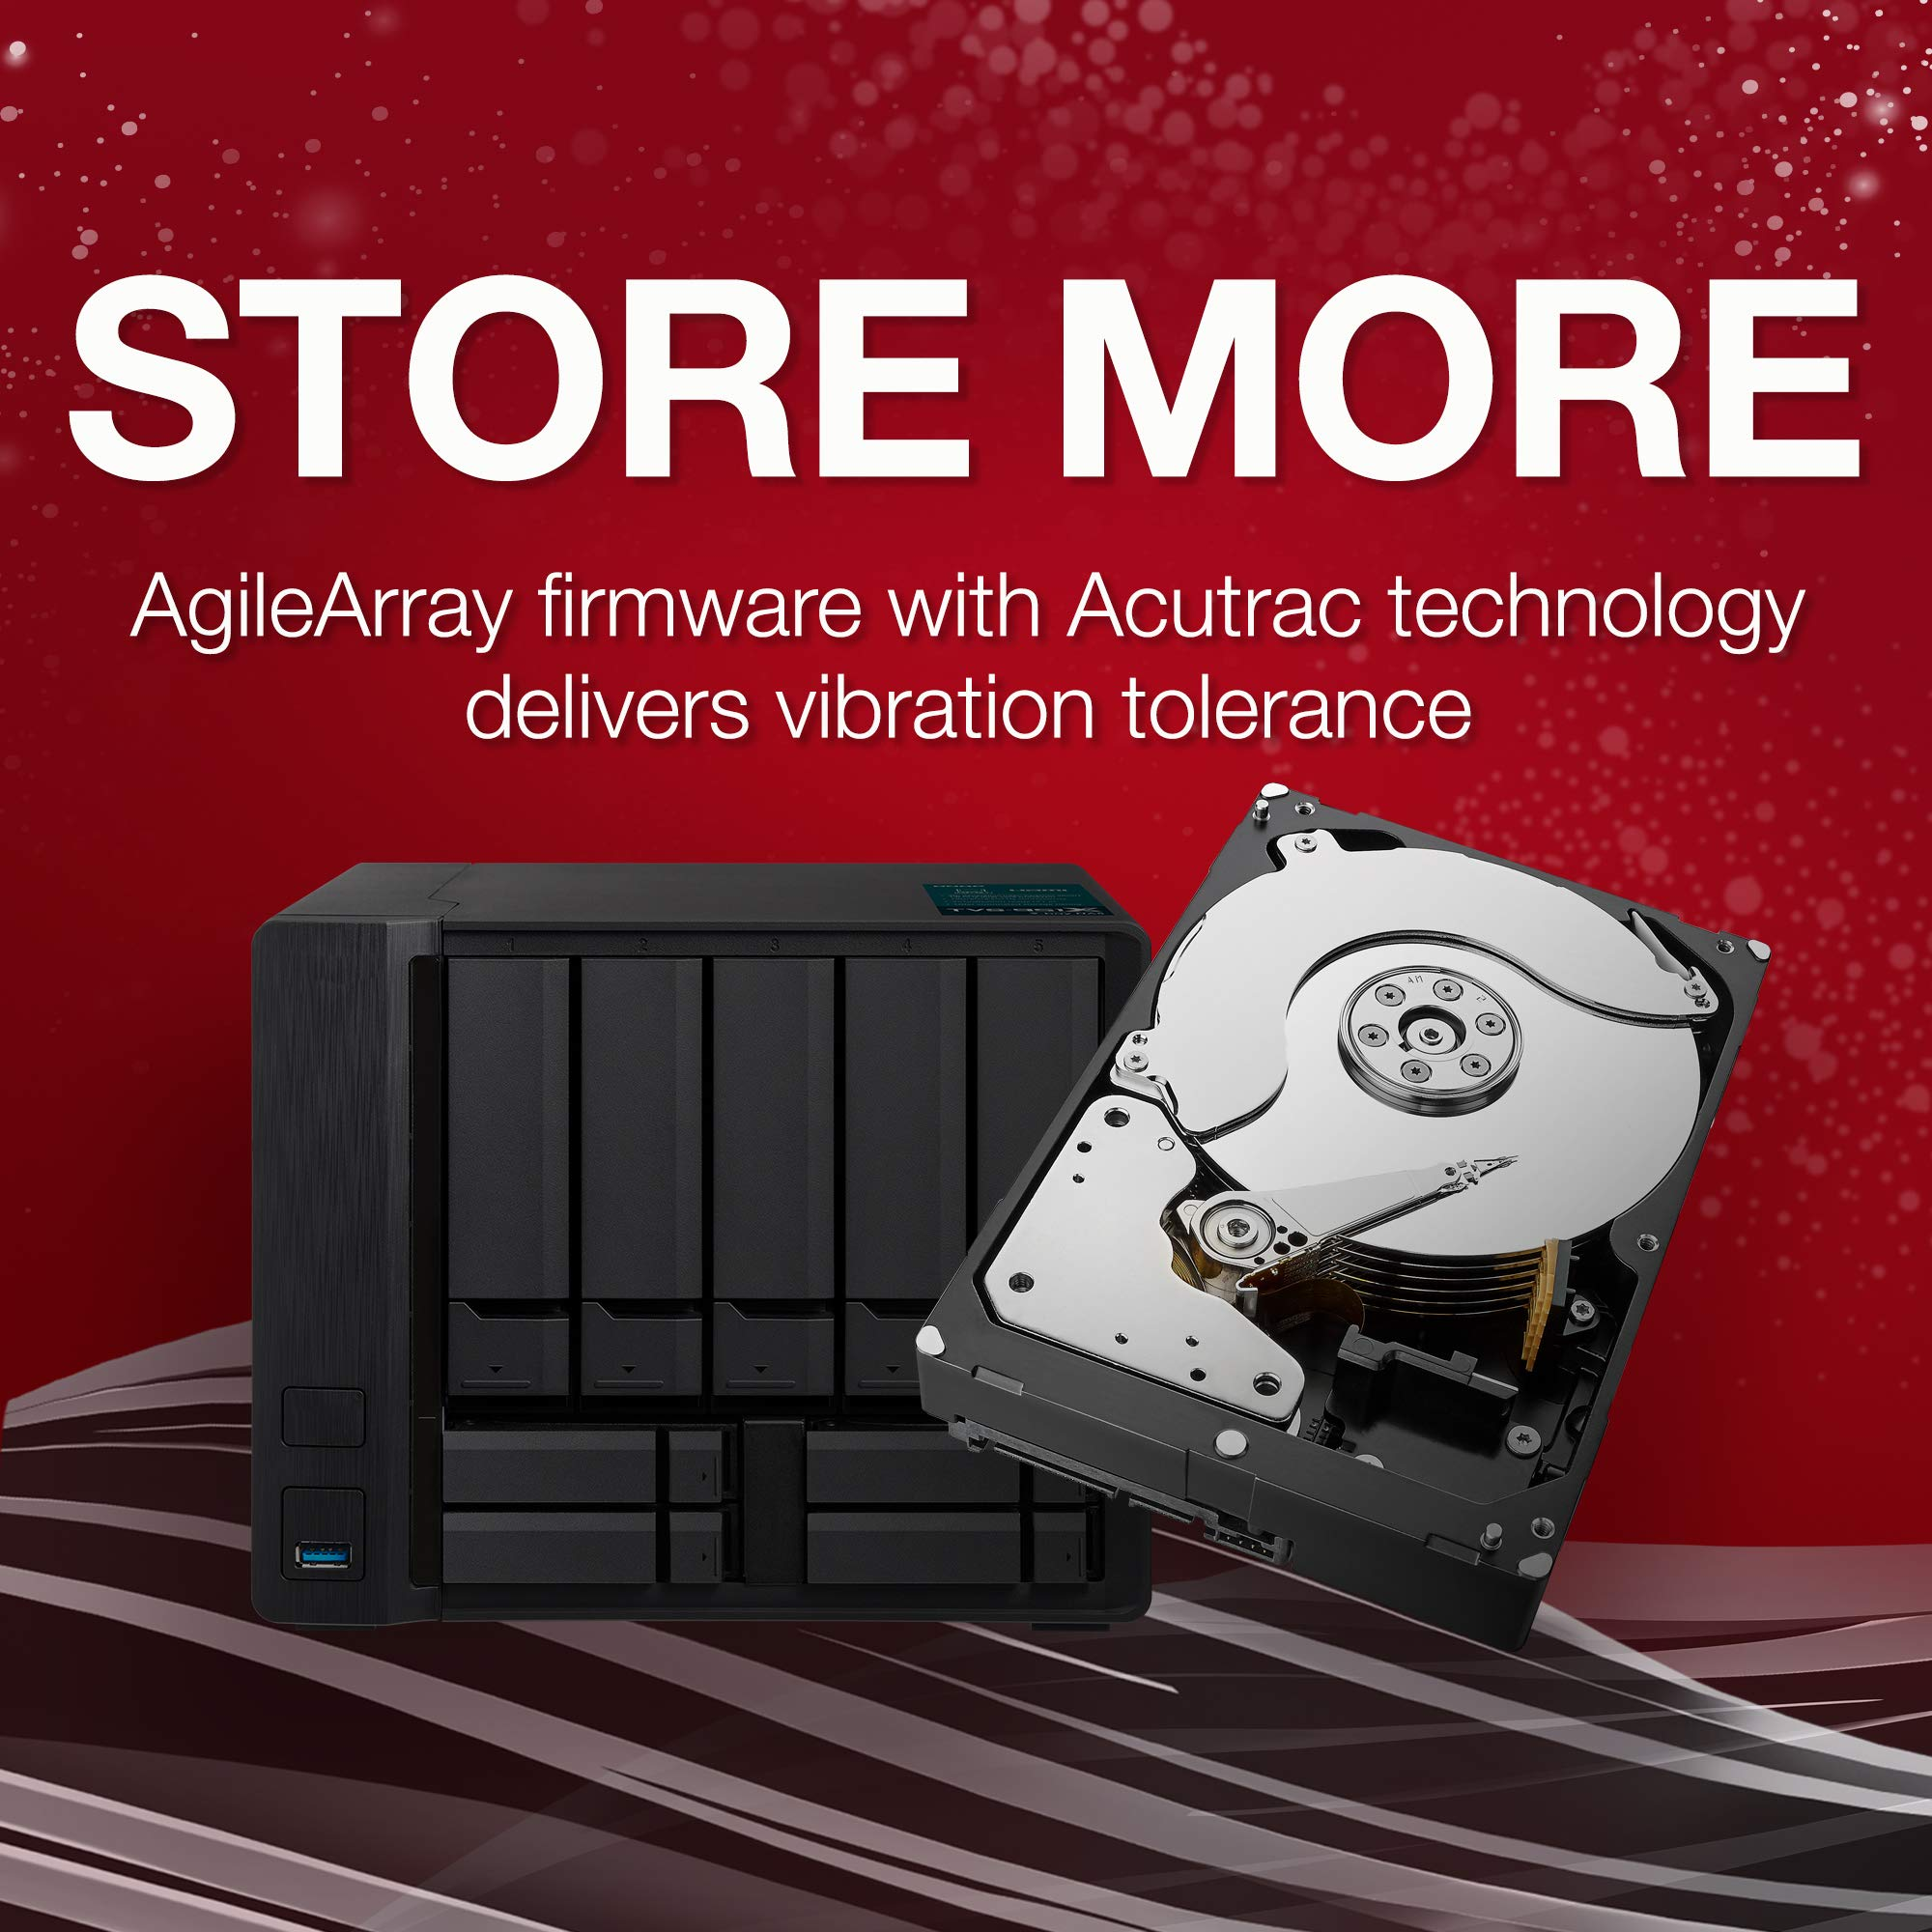 Seagate IronWolf 6TB NAS Internal Hard Drive HDD - 3.5 Inch SATA 6Gb/s 7200 RPM 256MB Cache for RAID Network Attached Storage (ST6000VN0033) by Seagate (Image #4)